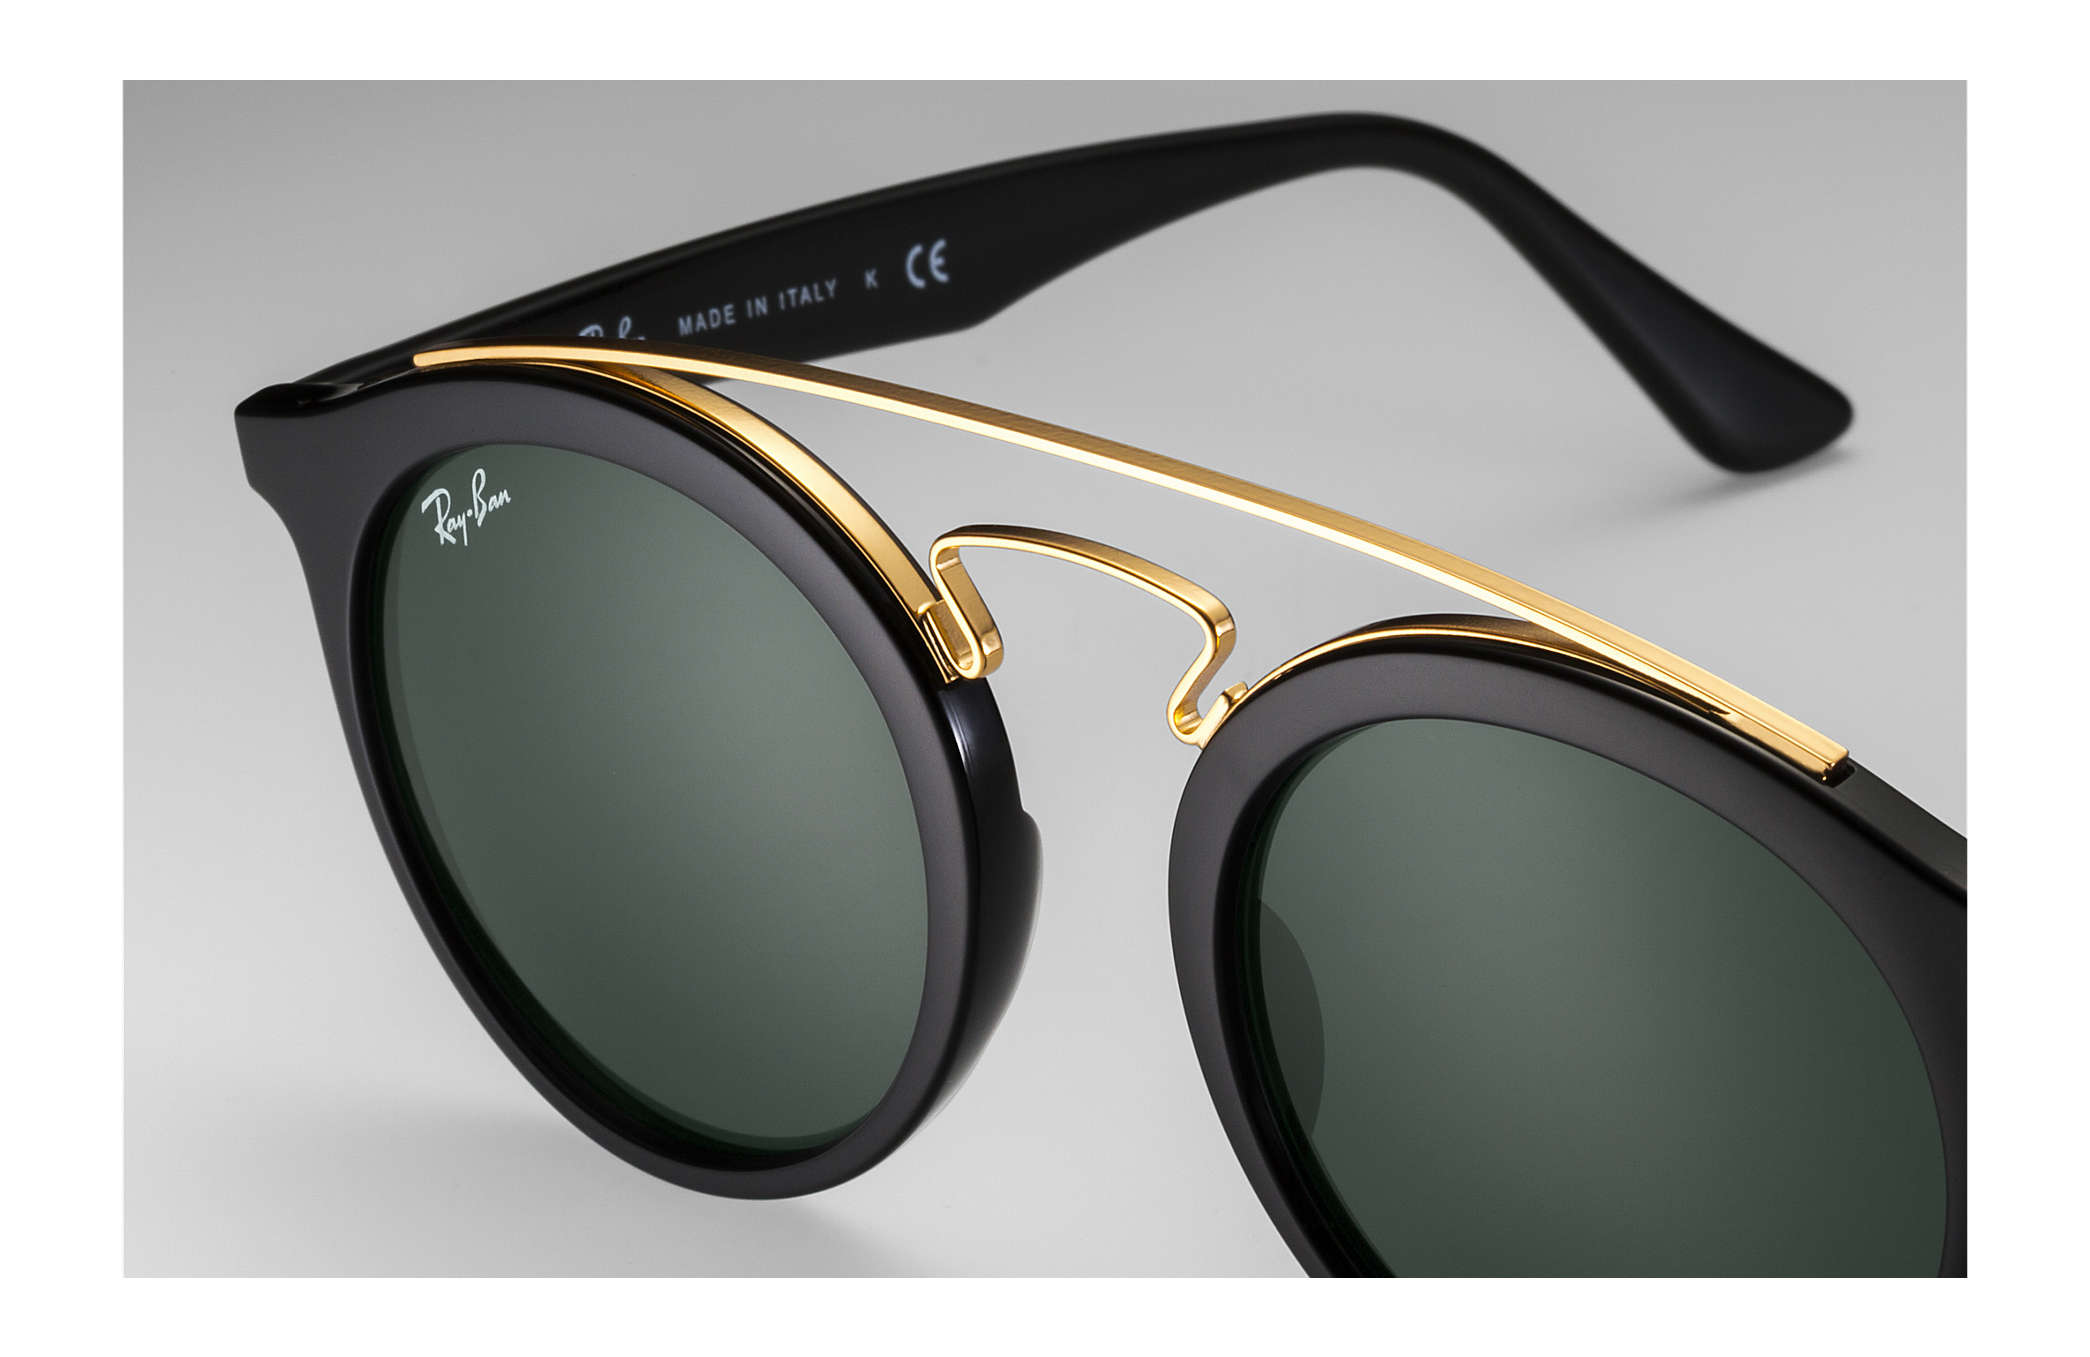 a85f8a096b Ray Ban Prescription Sunglasses Made In Italy « Heritage Malta